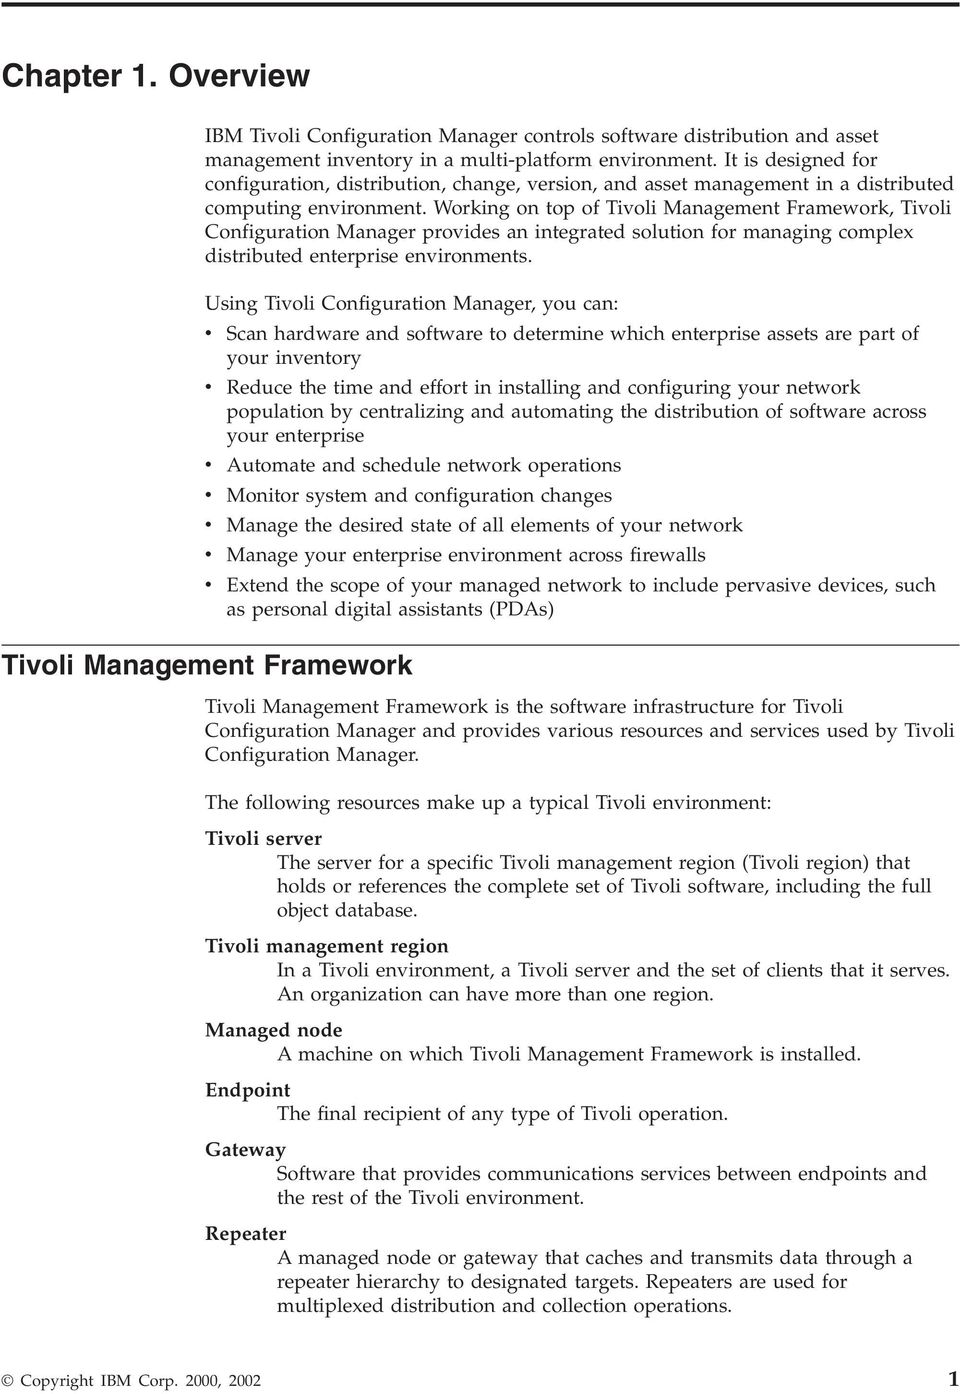 Working on top of Tivoli Management Framework, Tivoli Configuration Manager provides an integrated solution for managing complex distributed enterprise environments.